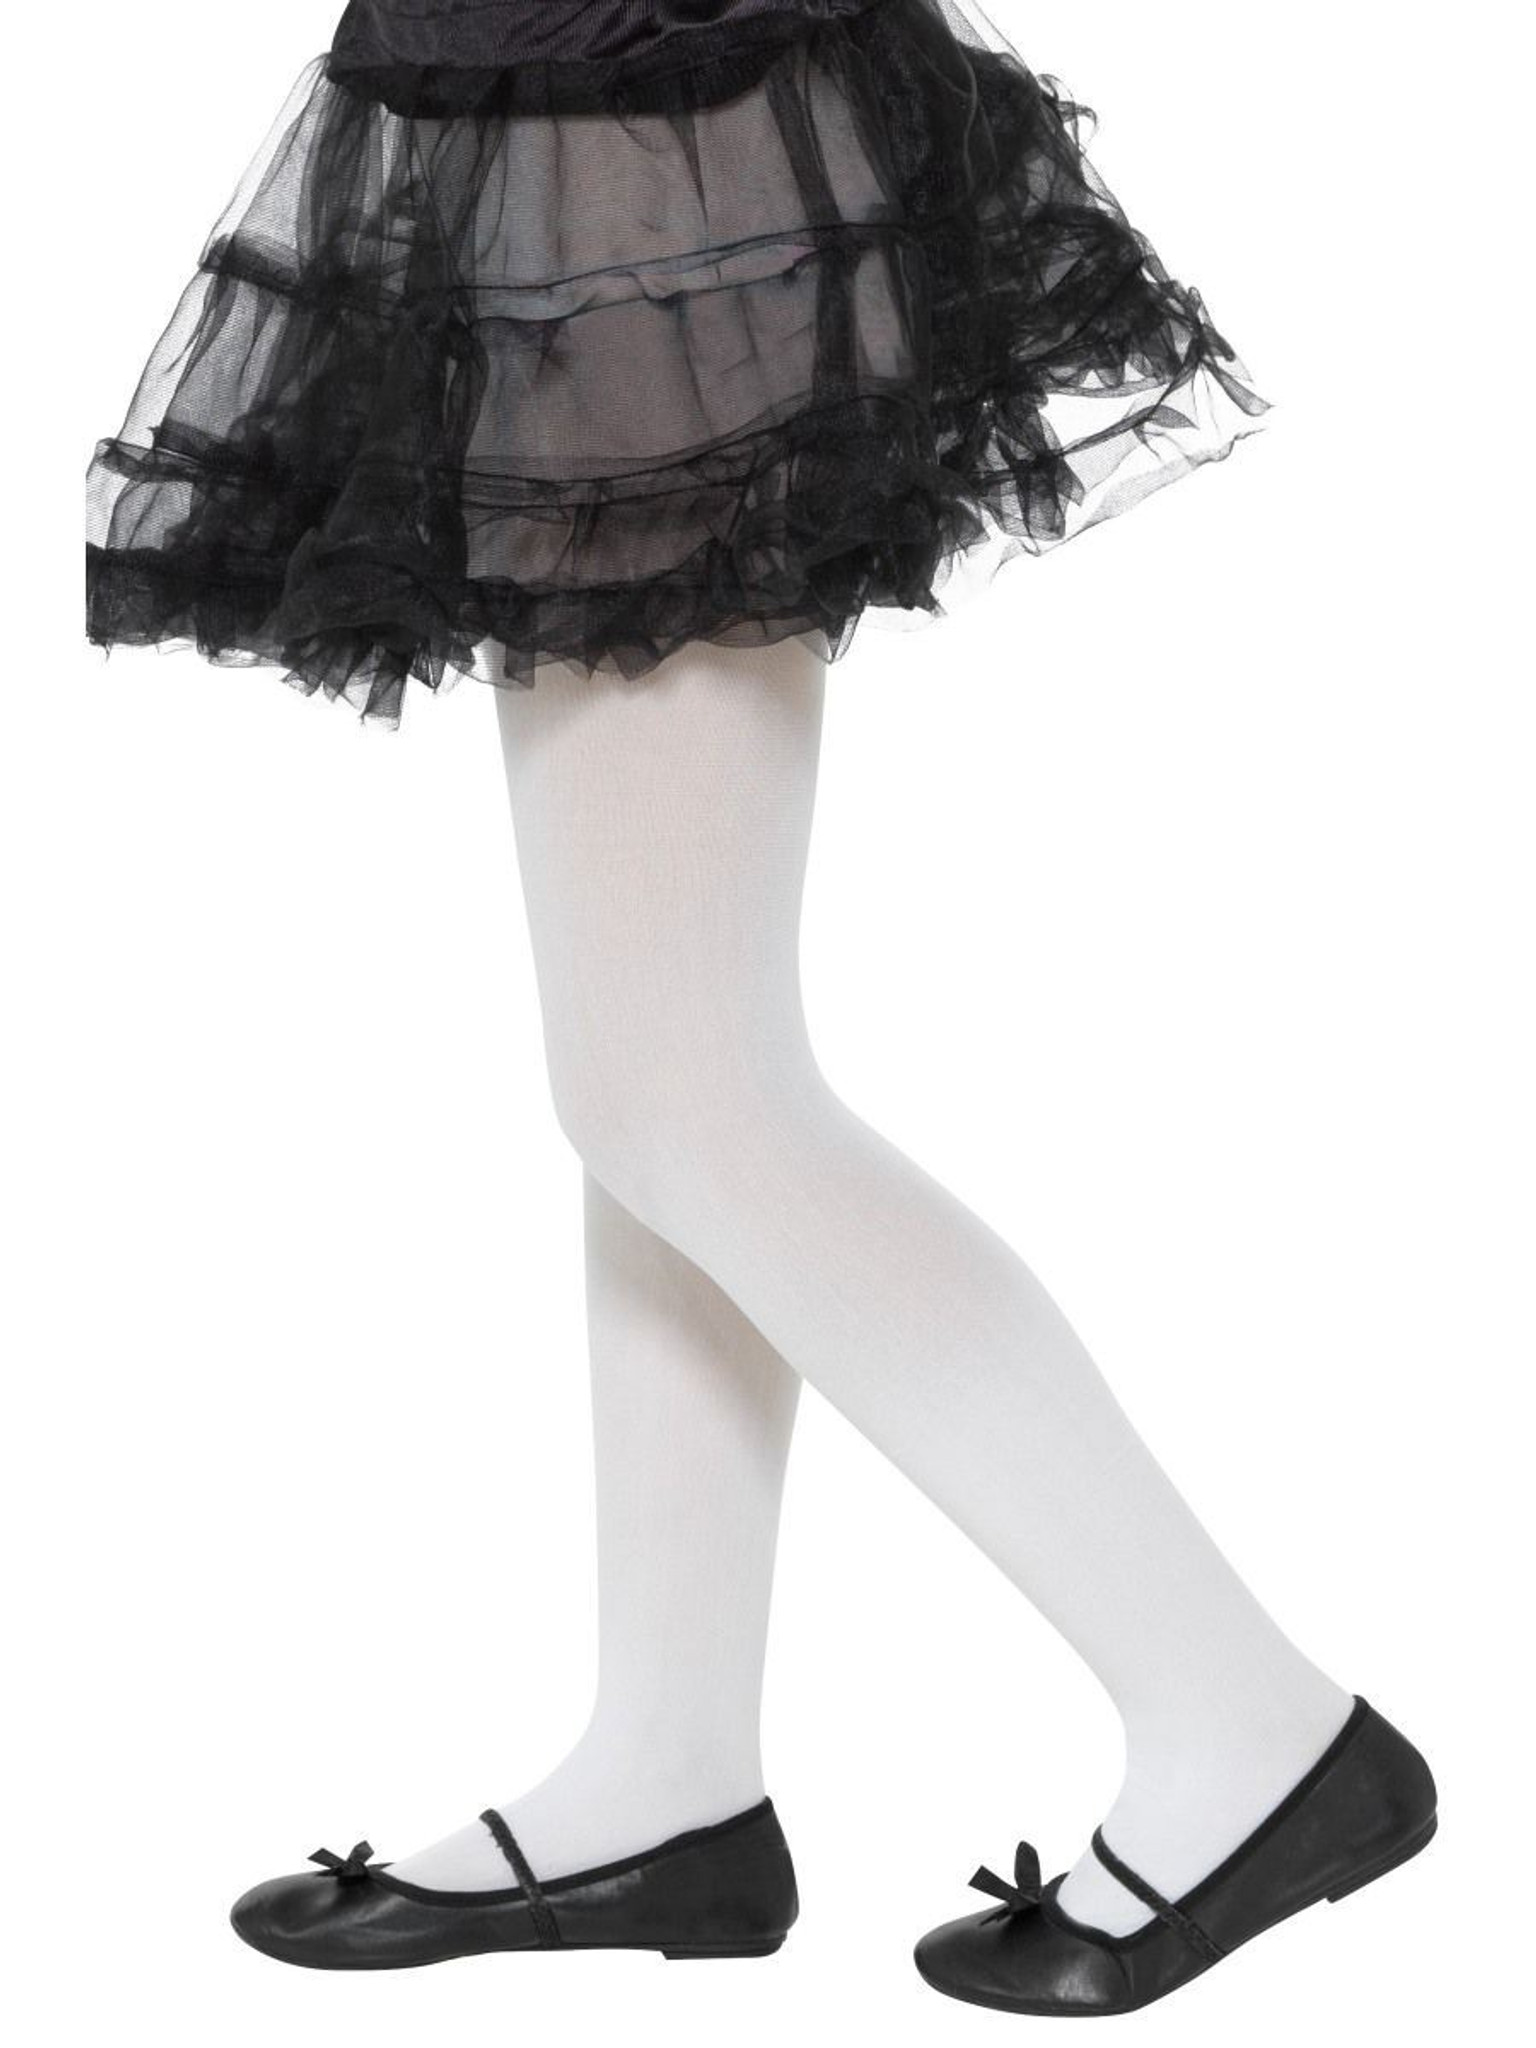 4ae50066e2d We're Partying Now Ltd · Home · Childrens Costumes · Opaque Tights ...